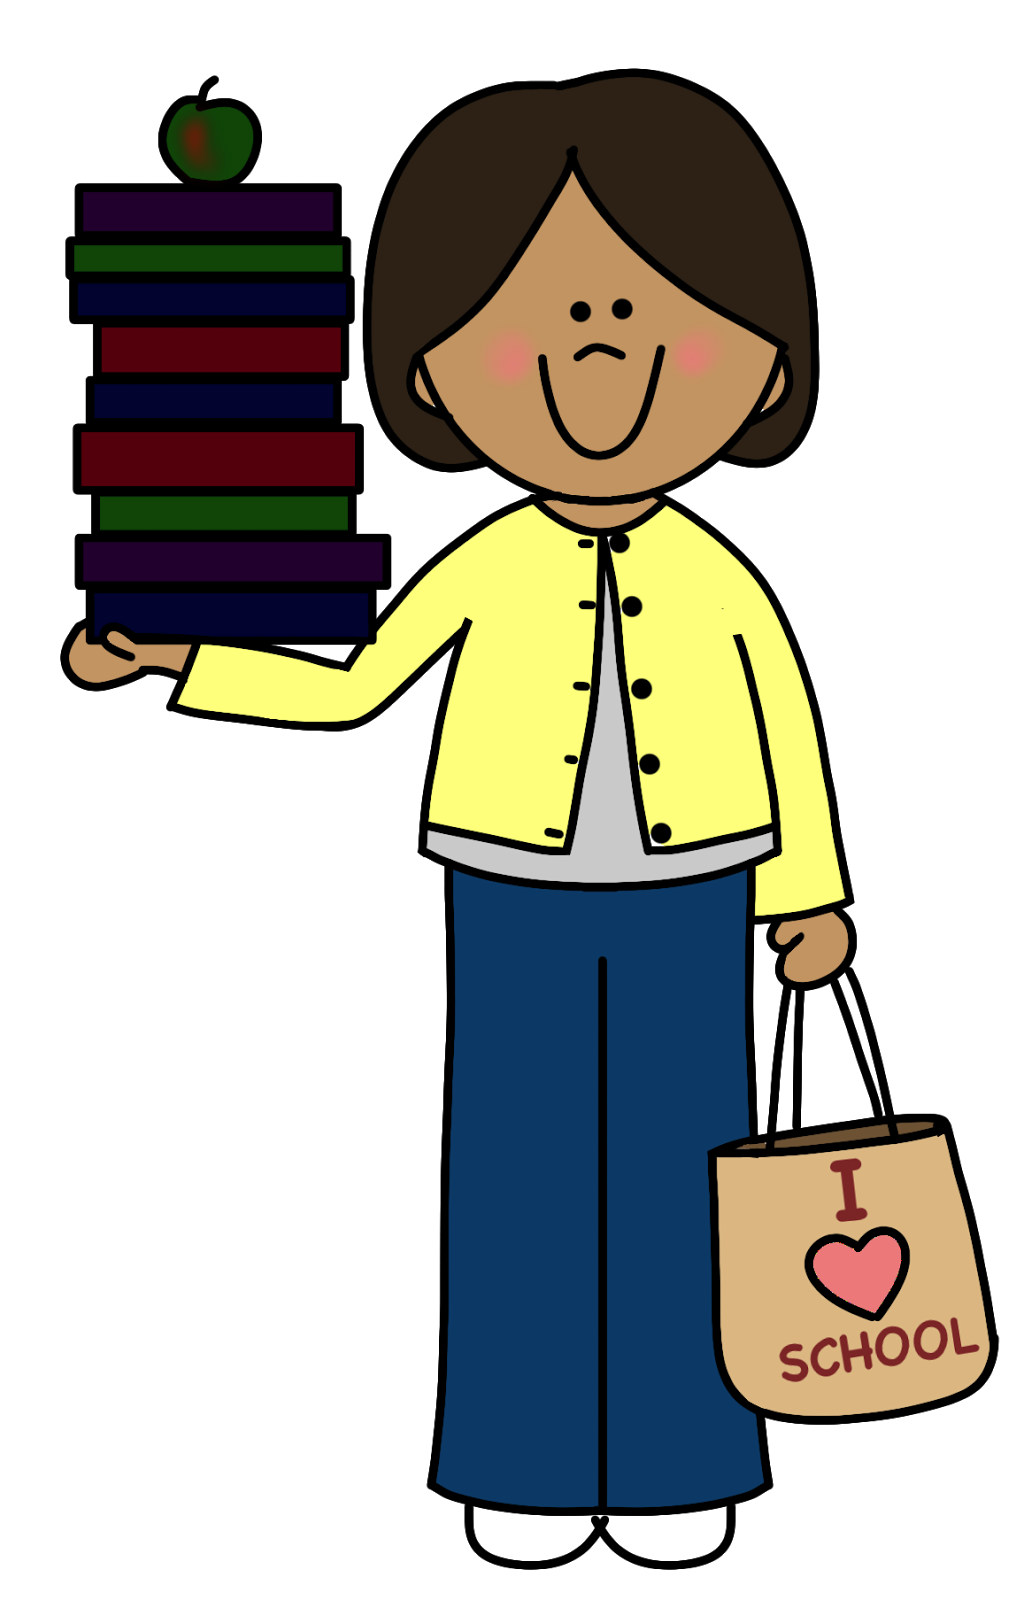 Clipart backpack child carrying. Kids learning image group